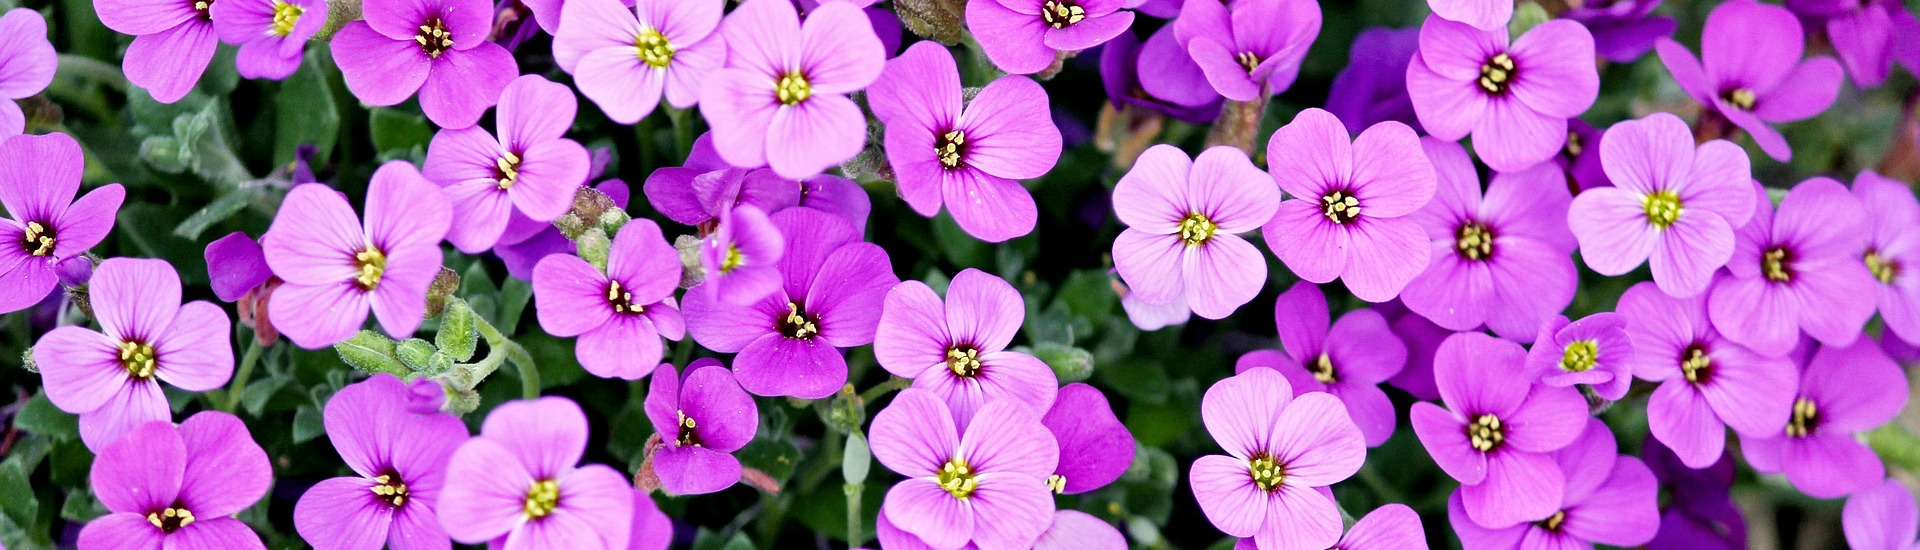 Purple Violet-Like Flowers_1920x550.jpg